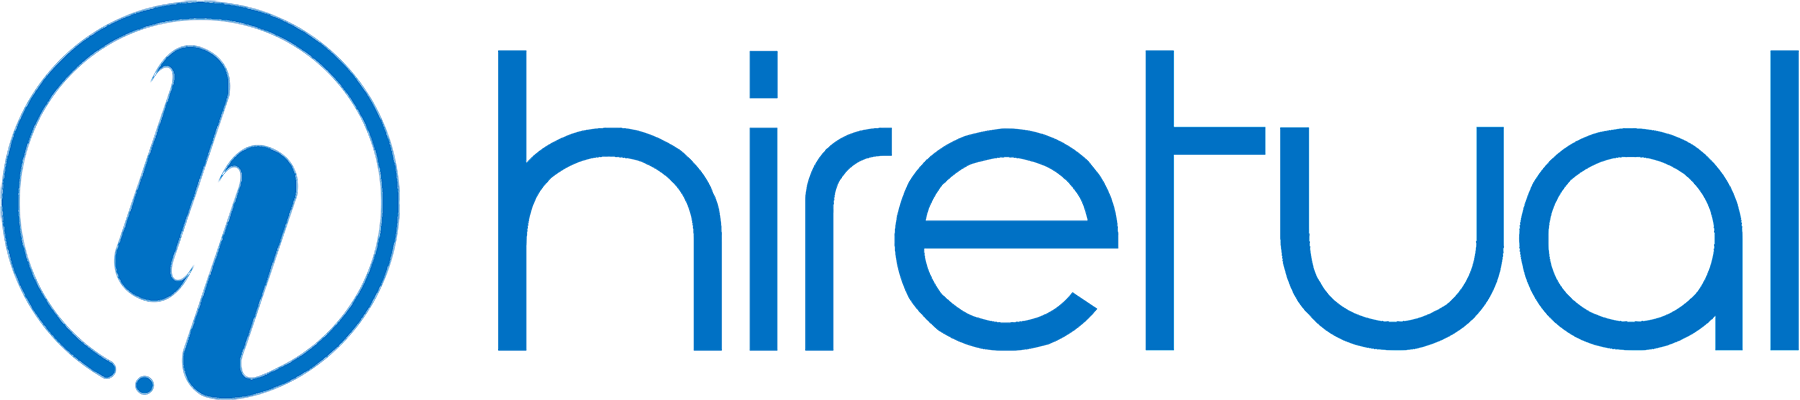 And also sponsored by Hiretual the recruiter's best friend.